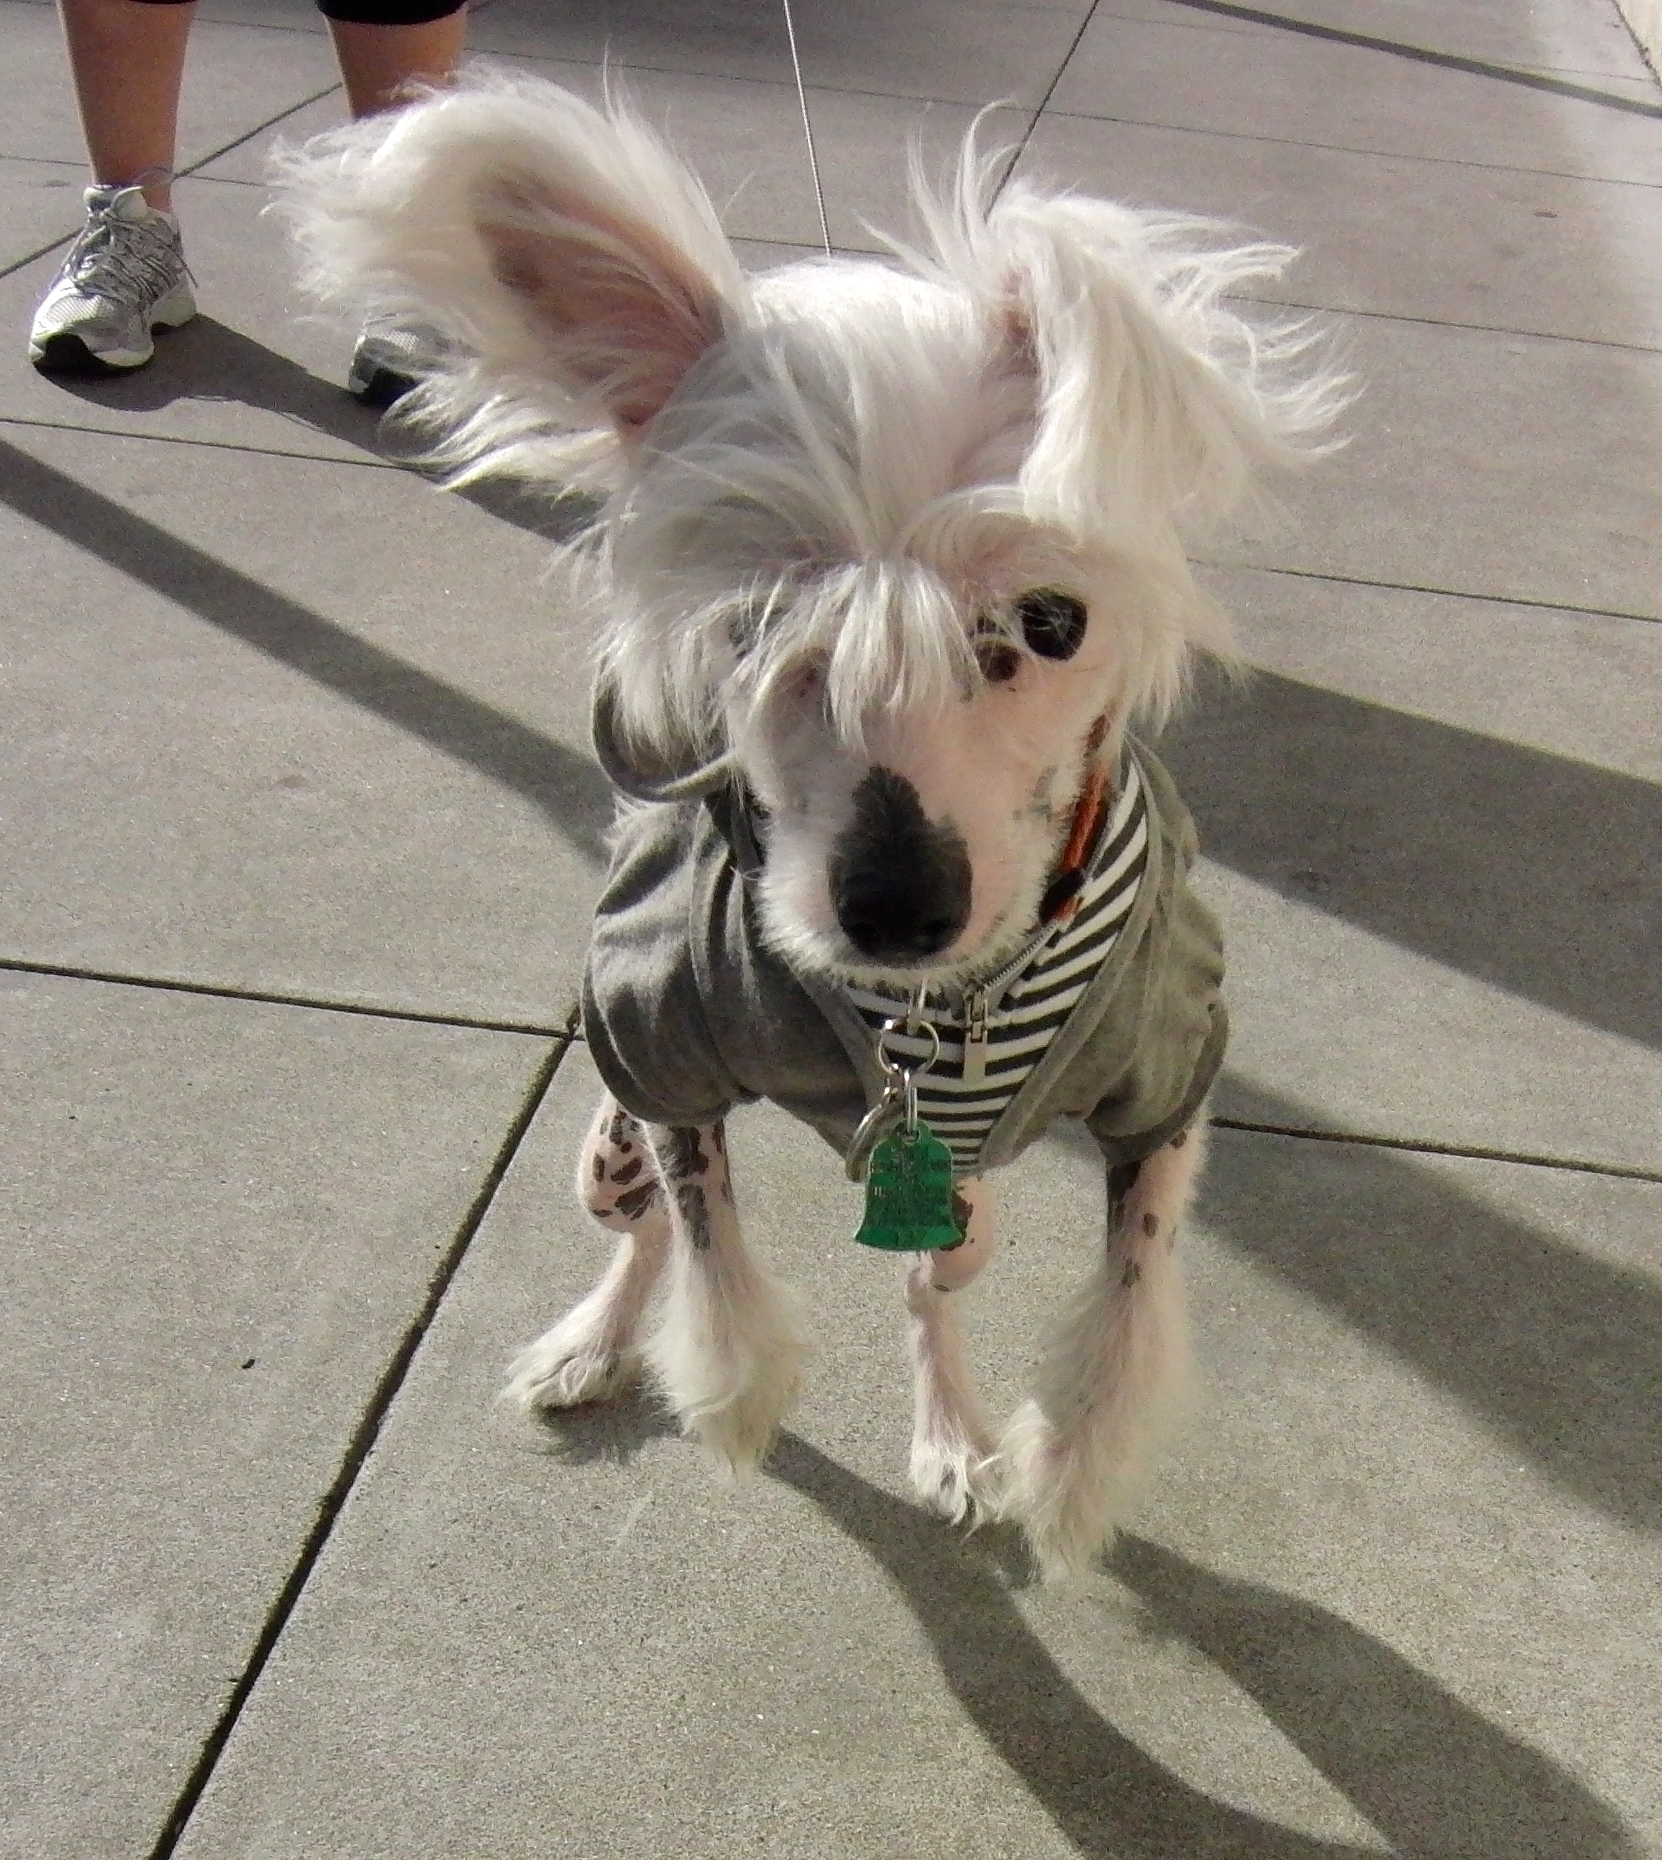 Chinese Crested Dog (Hairless Variety)